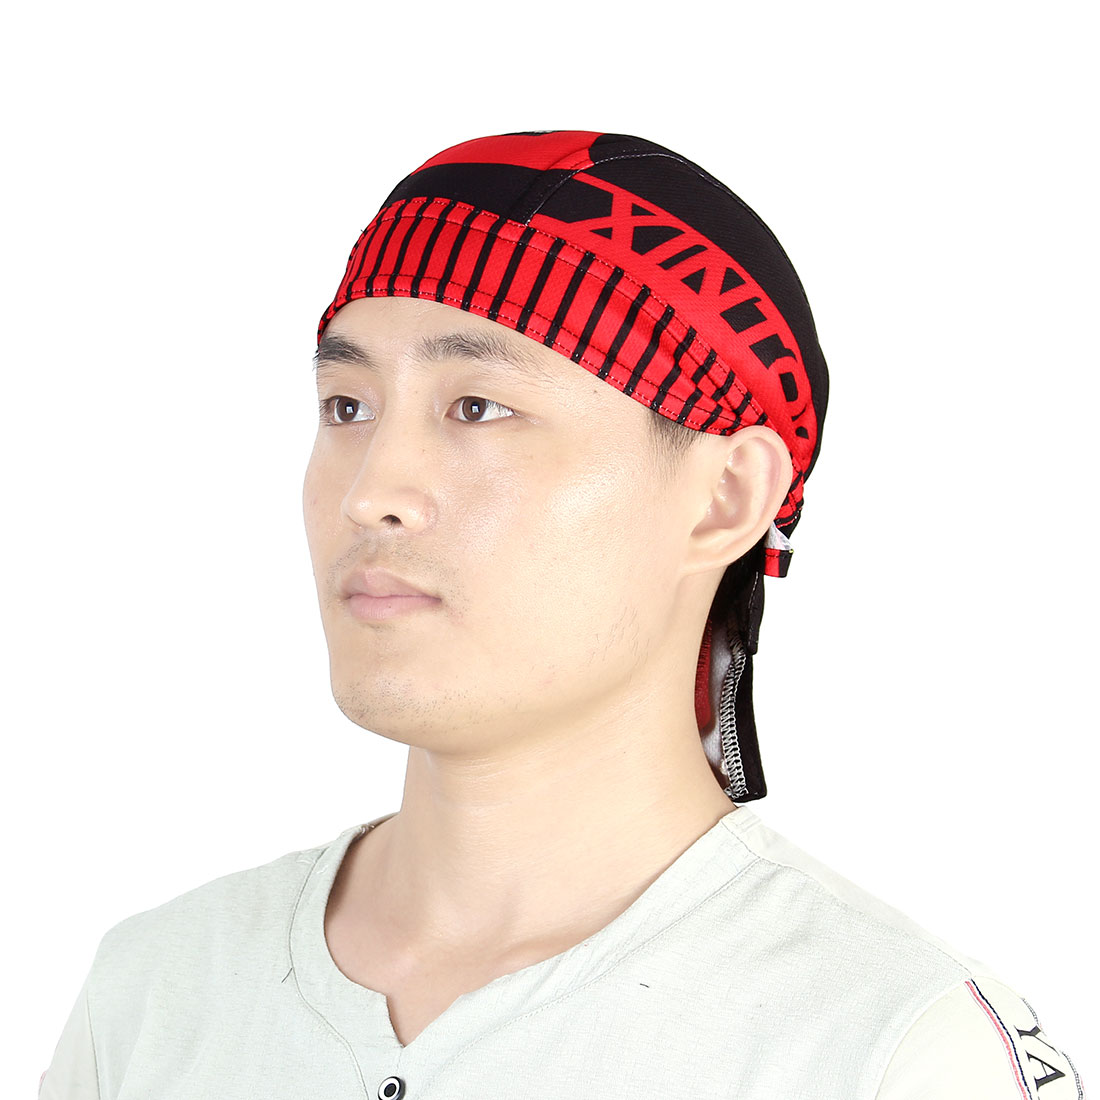 XINTOWN Authorized Adult Unisex Outdoor Elastic Headscarf Quick Dry Cap Cycling Biking Sports Pirate Hat